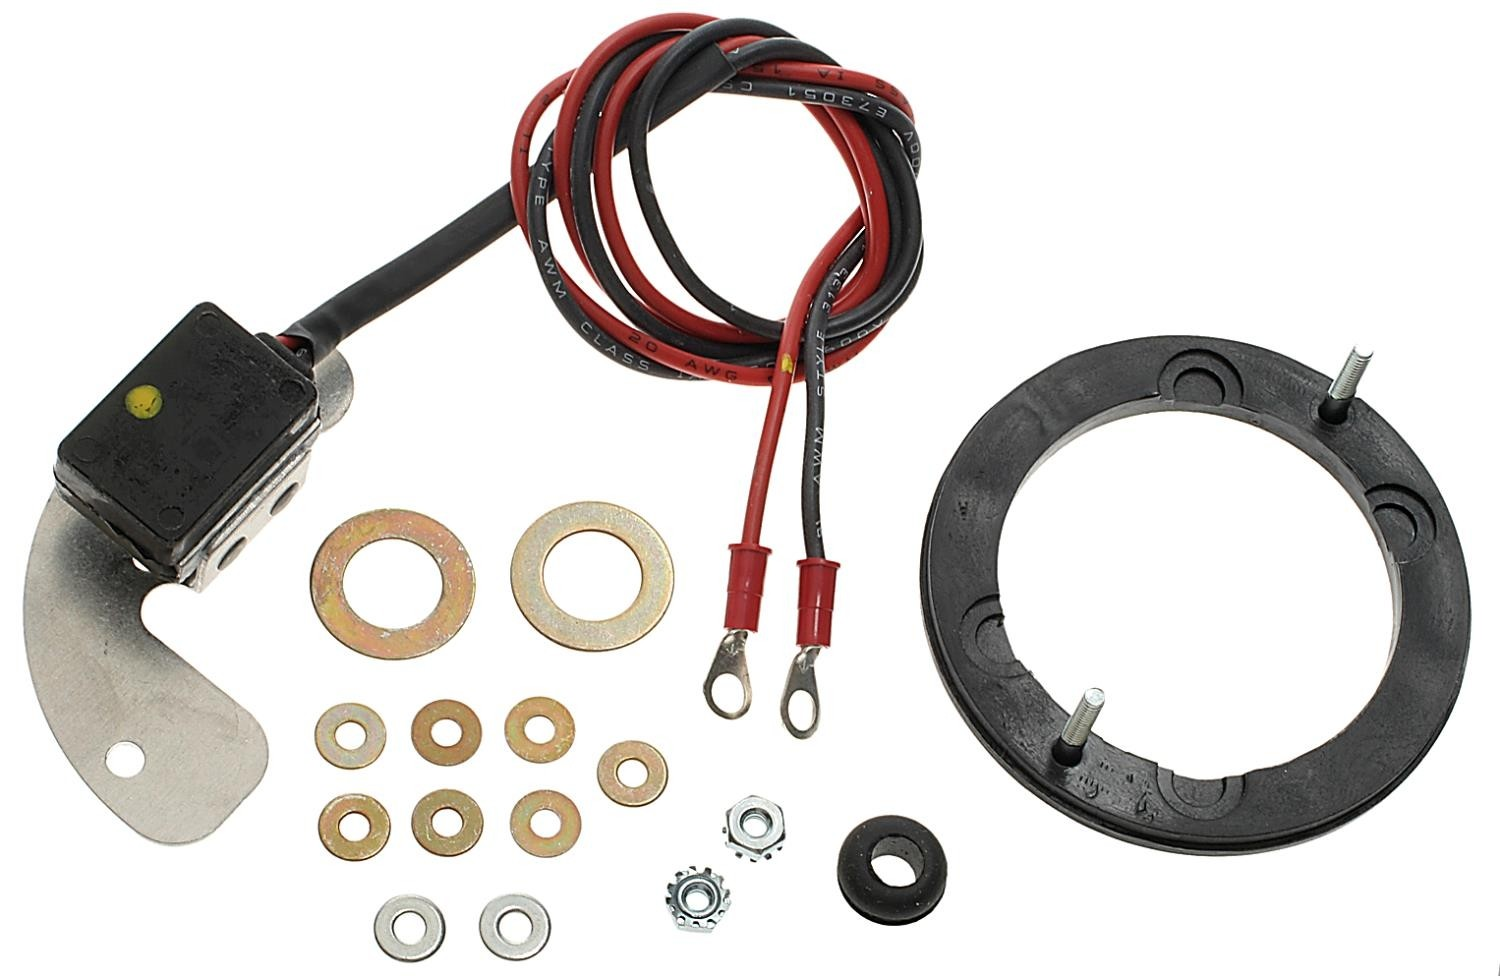 ACDELCO GOLD/PROFESSIONAL - Ignition Conversion Kit - DCC D3968A